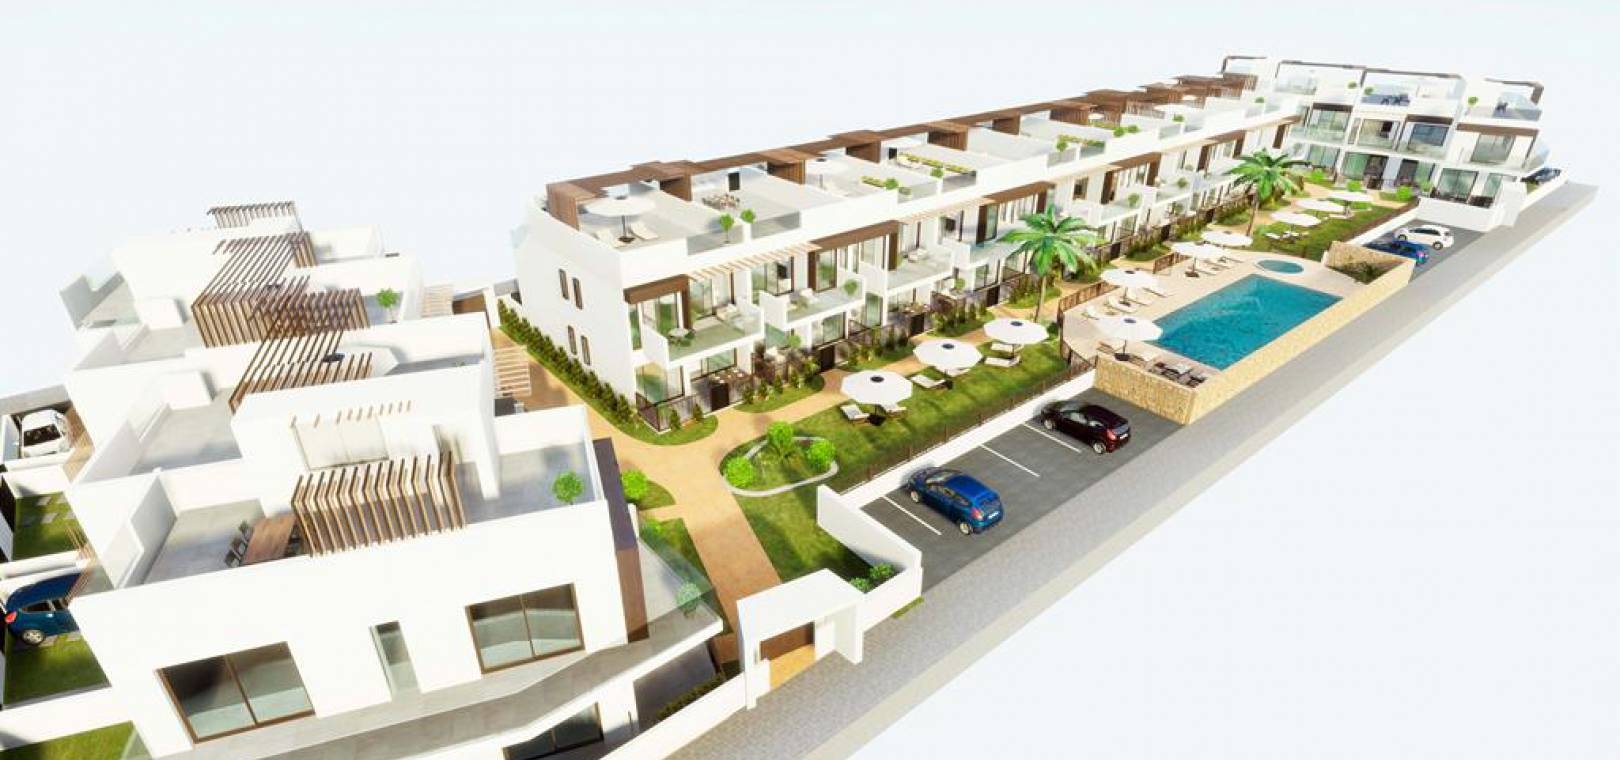 Nouvelle construction - Appartement - Los Alcazares - 30710, Los Alcazares, Murcia, Spain